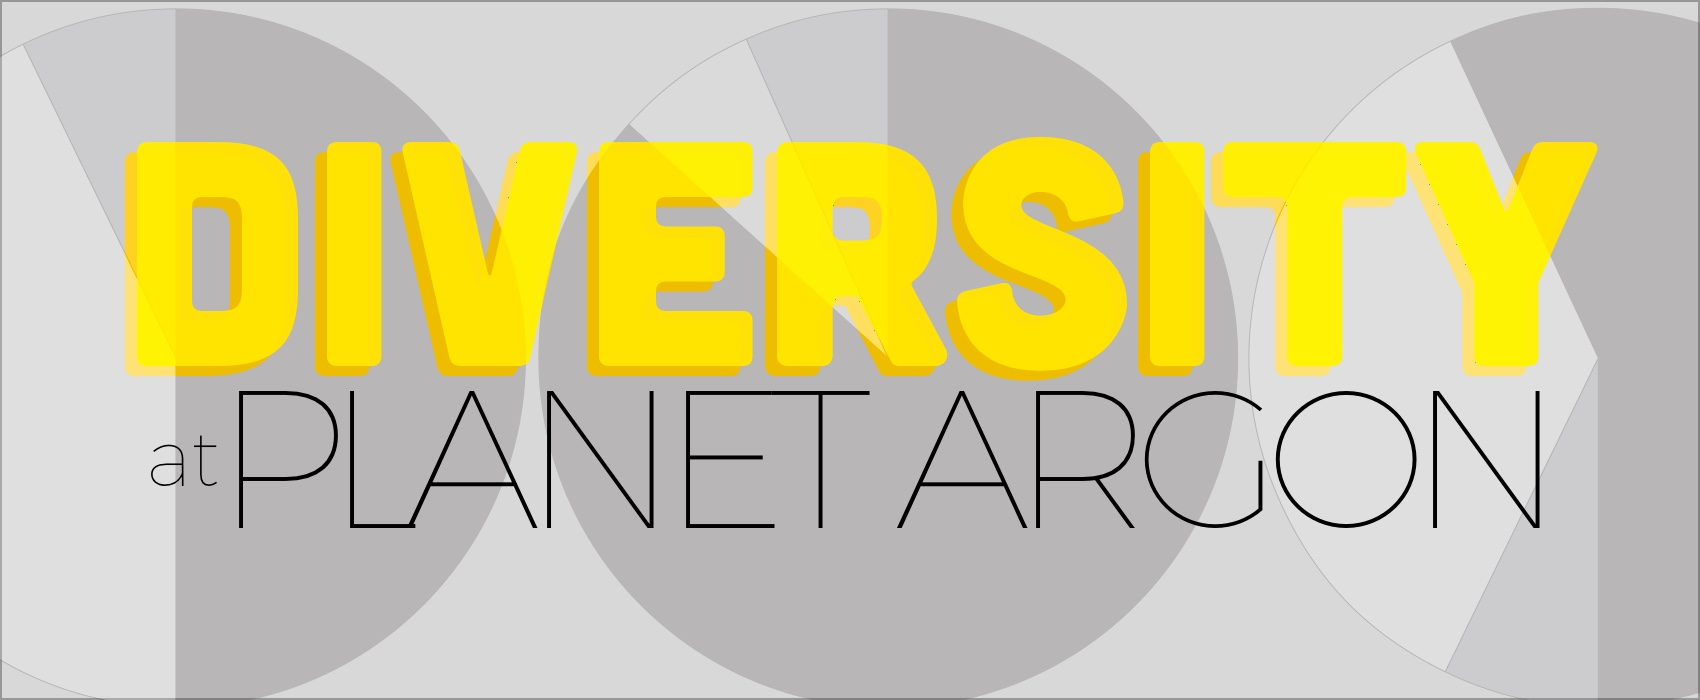 Diversity at Planet Argon - 2016 Statistics